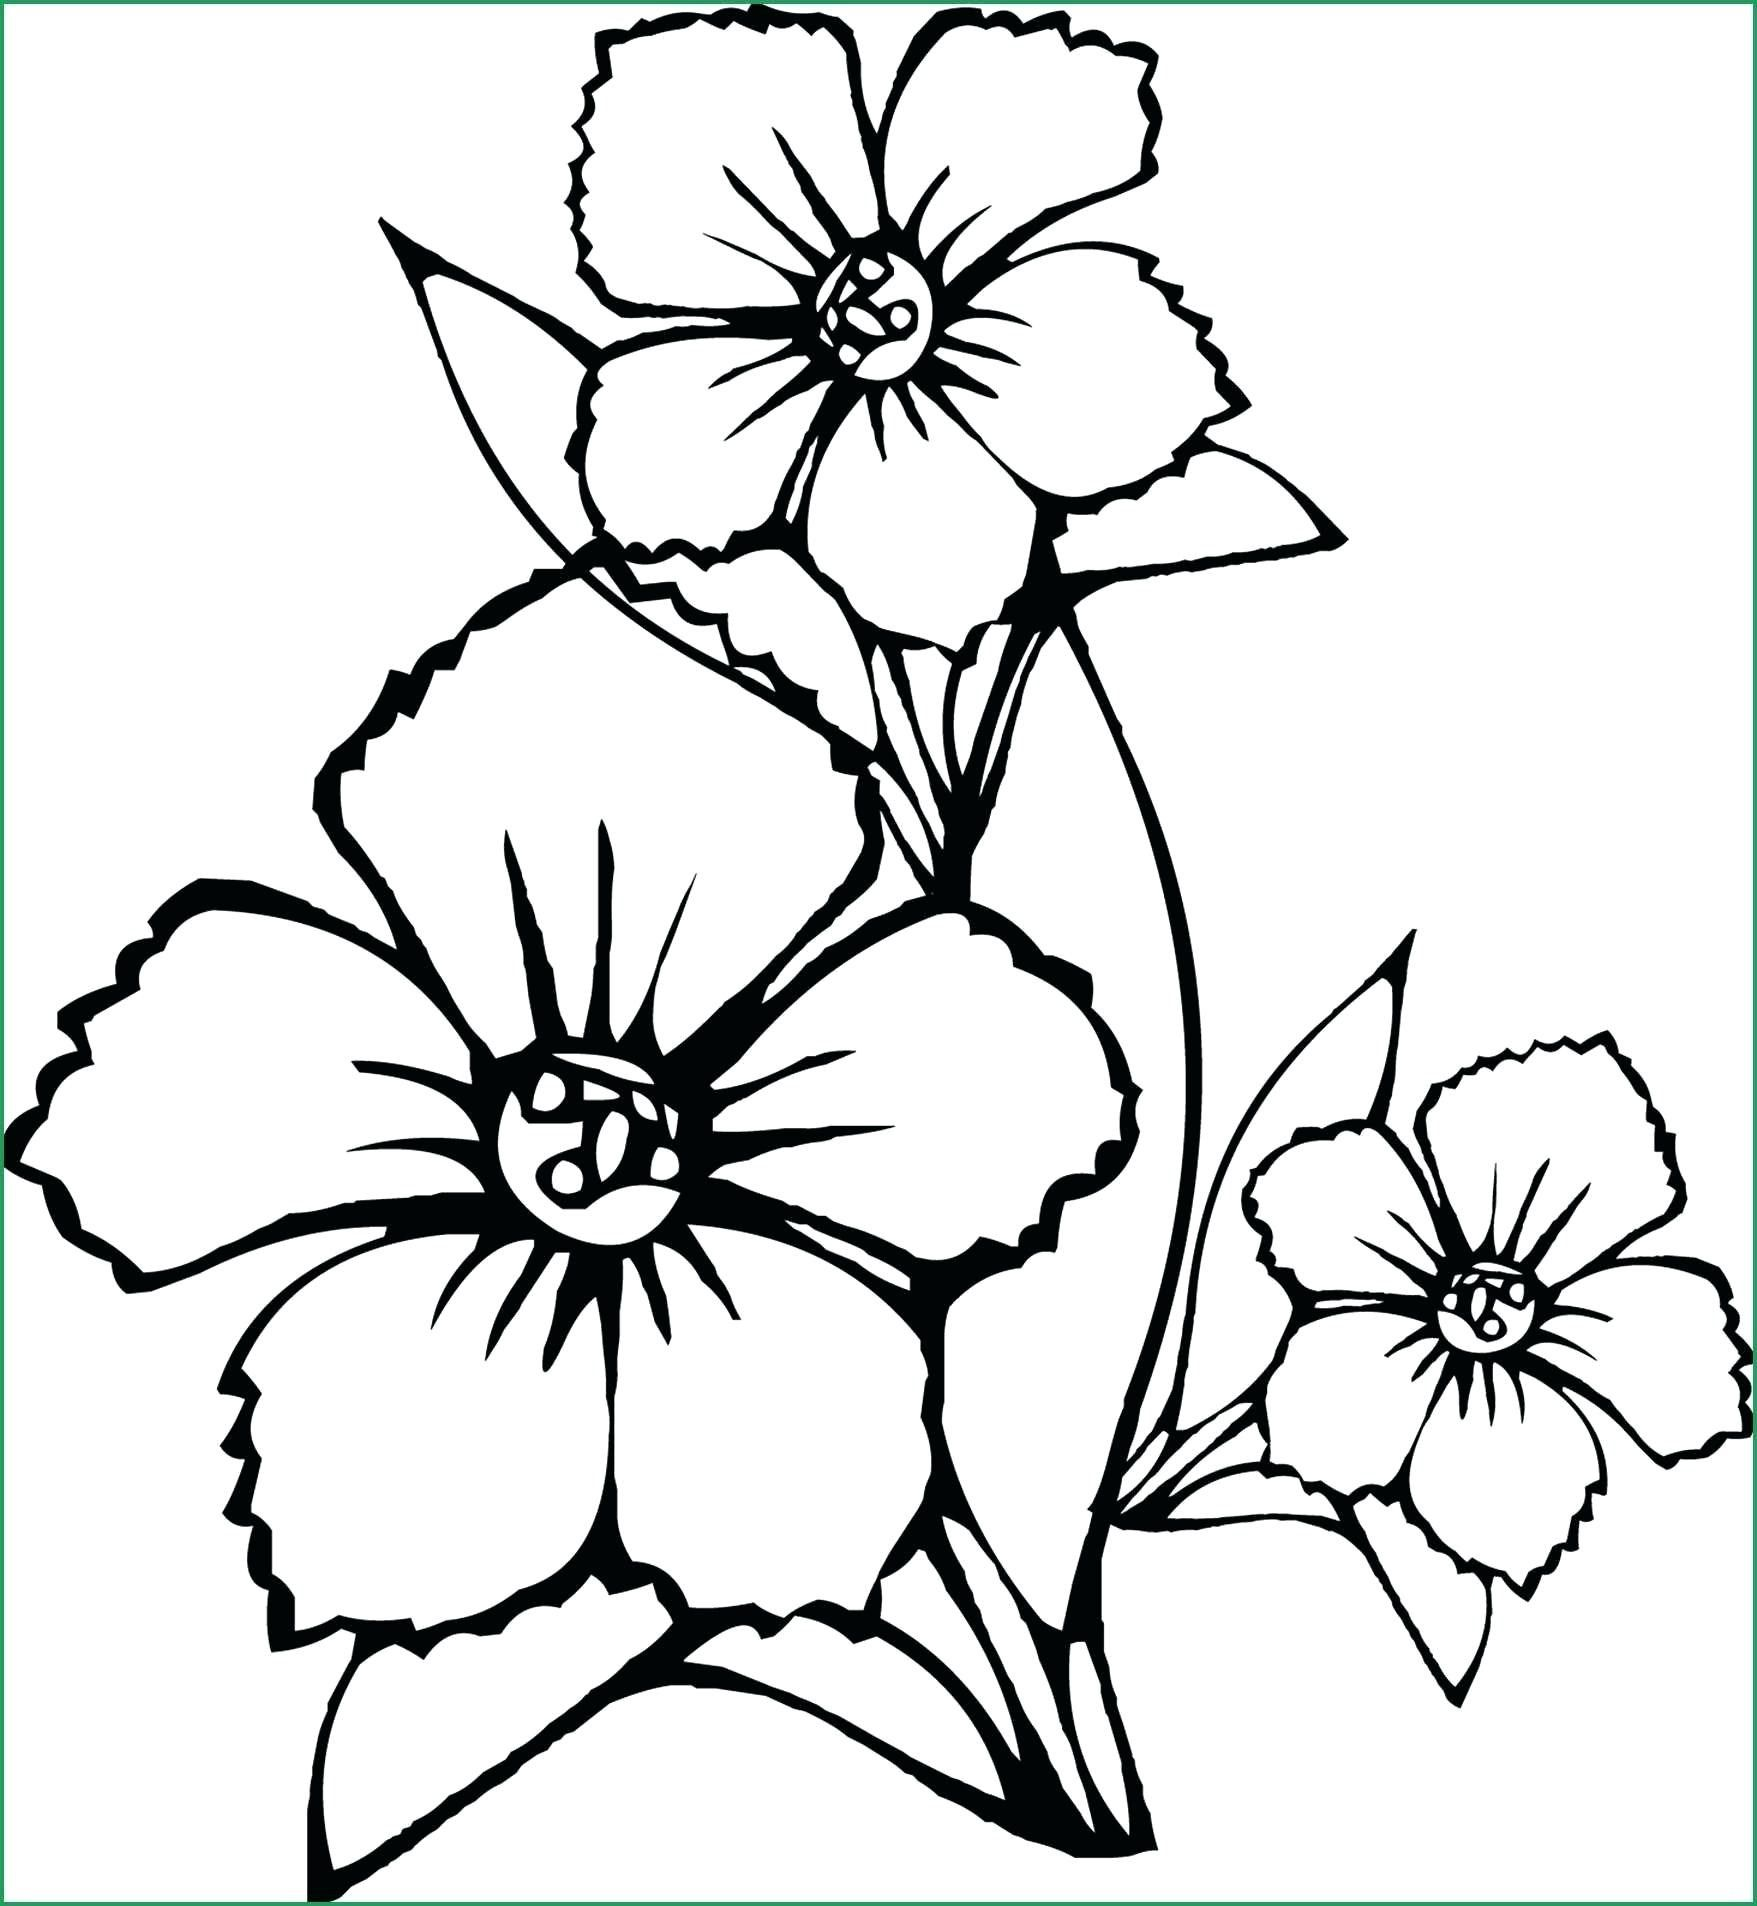 34 Butterfly On Flower Coloring Pages Gif In 2021 Butterfly Coloring Page Printable Flower Coloring Pages Flower Coloring Pages